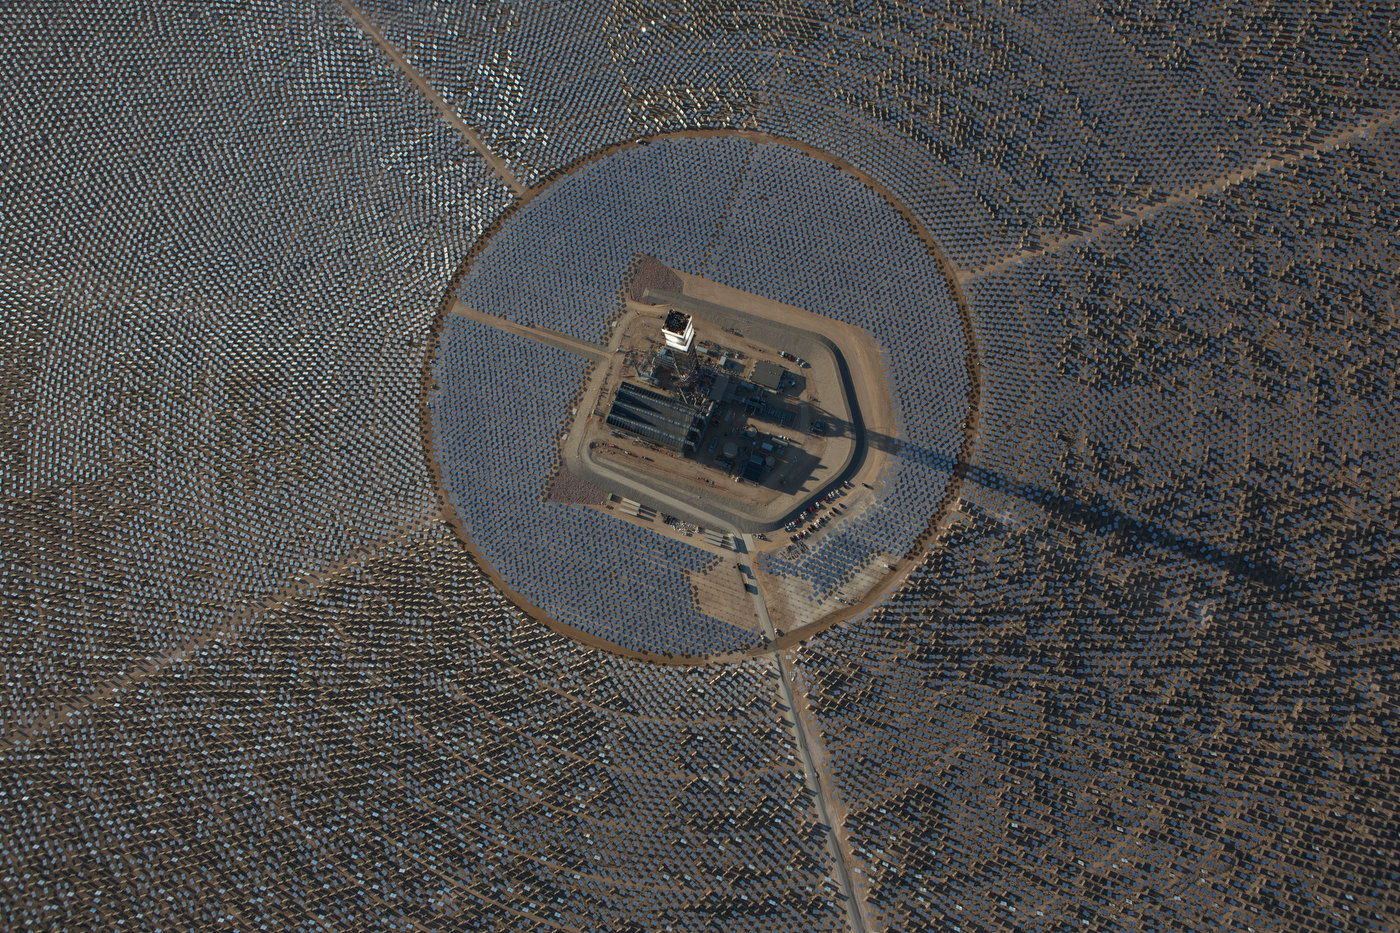 IVANPAH, CALIFORNIA, APRIL 05 2013: An aerial view of Tower 1 and its heliostats at  the Ivanpah Solar Power Facility. The top of Tower 1's is {quote}lit{quote} as steam blow tests are in progress. Located in the Mojave Desert 40 miles southwest of Las Vegas, The Ivanpah Solar Power Facility is a solar thermal power project, currently under construction, with a planned capacity of 392 megawatts, enough to power approximately 140,000 houses. It will deploy 170,000 heliostat mirrors spread over 4,000 hectares, focusing solar energy on boilers located atop three solar power towers, generating steam to drive specially adapted steam turbines The project, developed by Bechtel, will cost $2.2 billion and be the largest solar farm in the world (photo Gilles Mingasson/Getty Images for Bechtel).